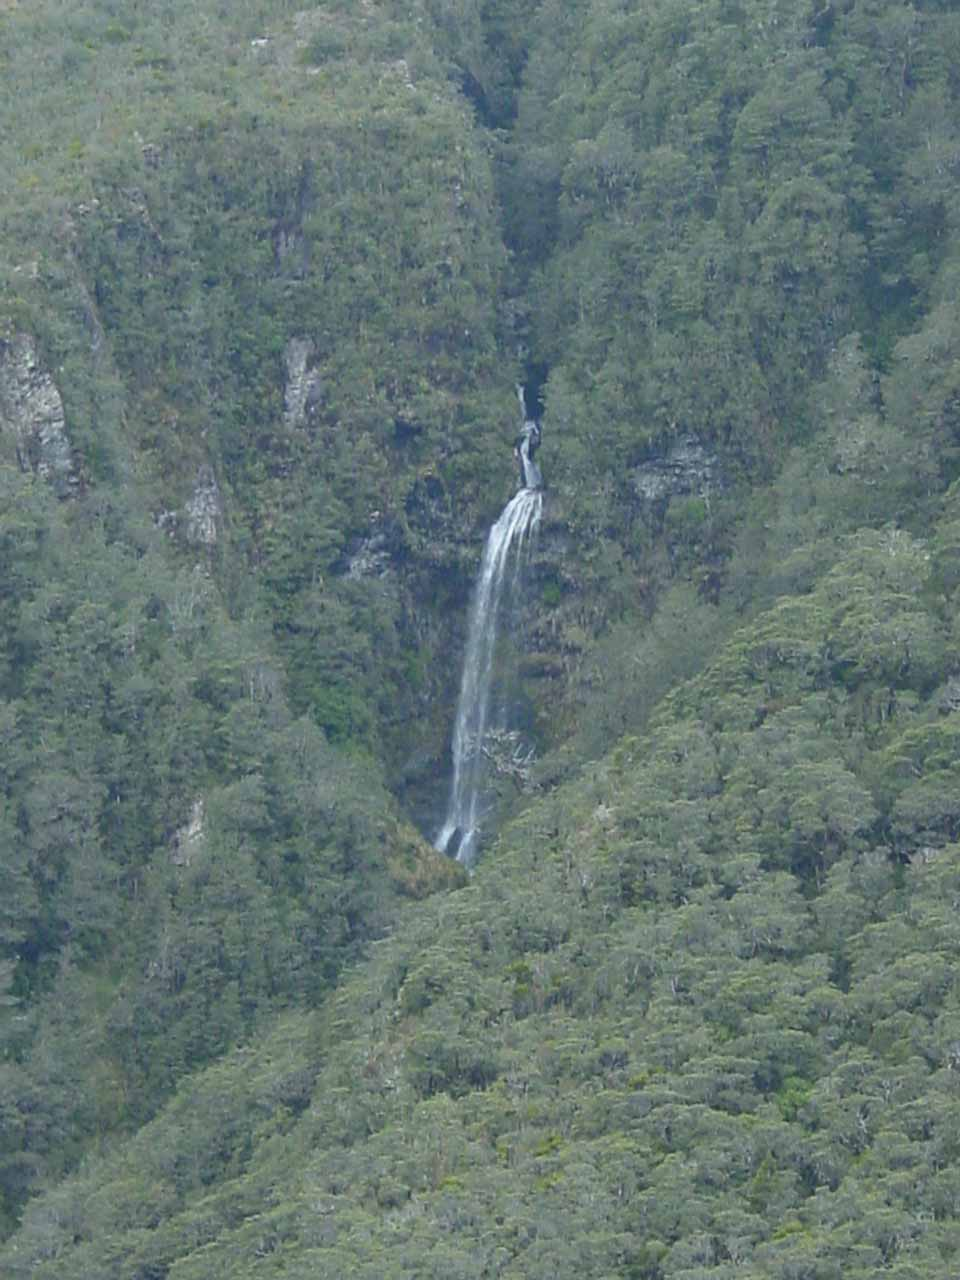 Bridal Veil Falls as seen from Scotts Track